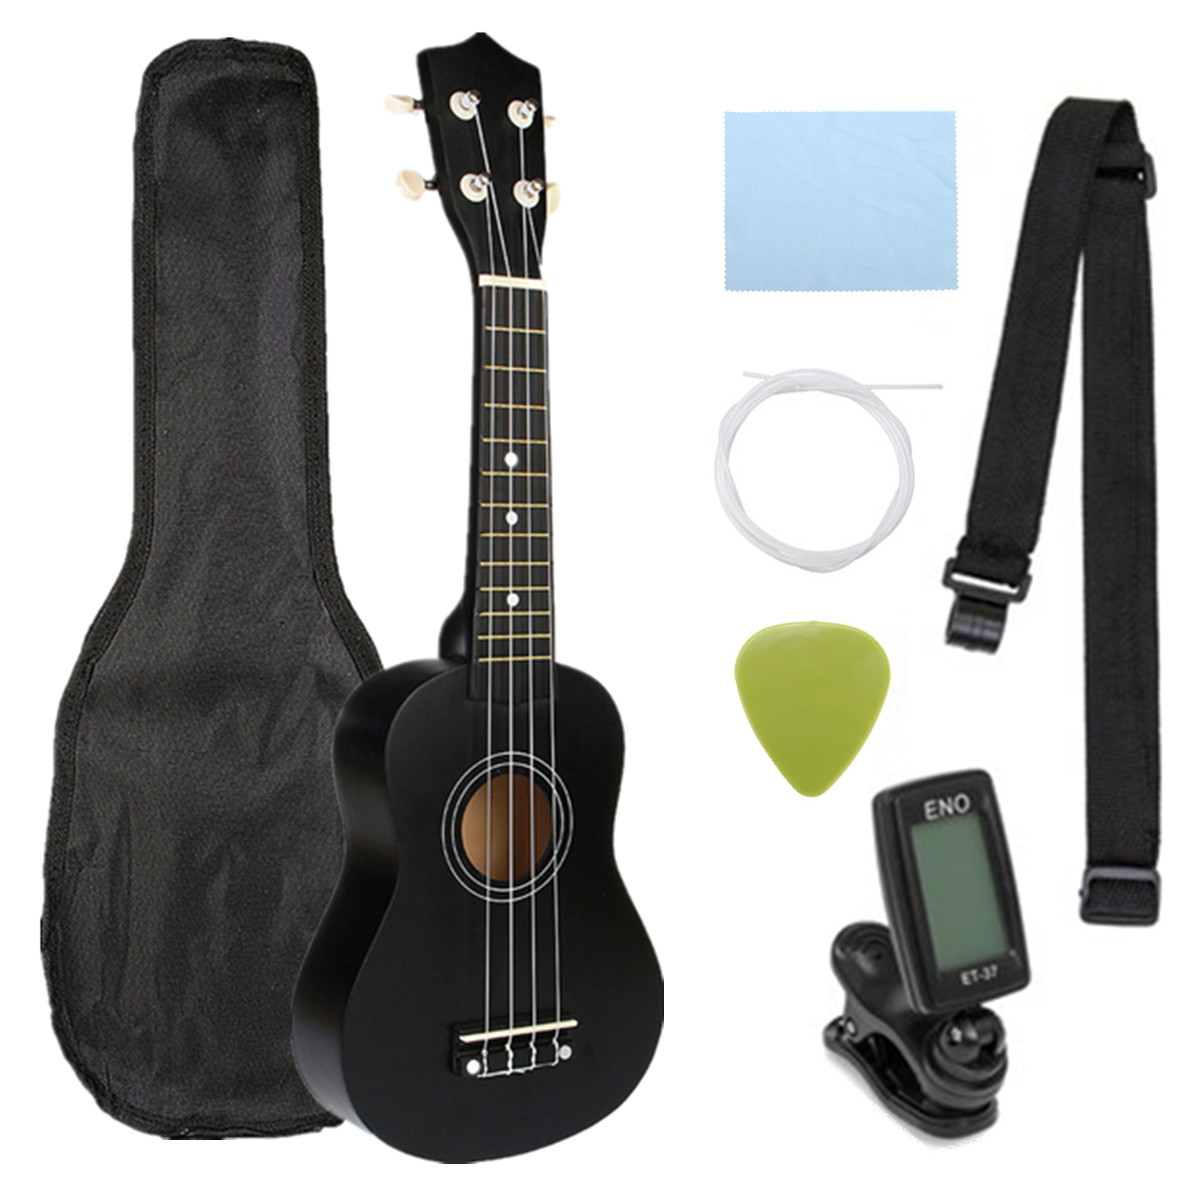 21 Inch 12 Fret Soprano Ukulele Basswoood Beginner Ukelele Stringed Musical Instrument With Gig Bag+Tuner+Strings+Pick+Strap